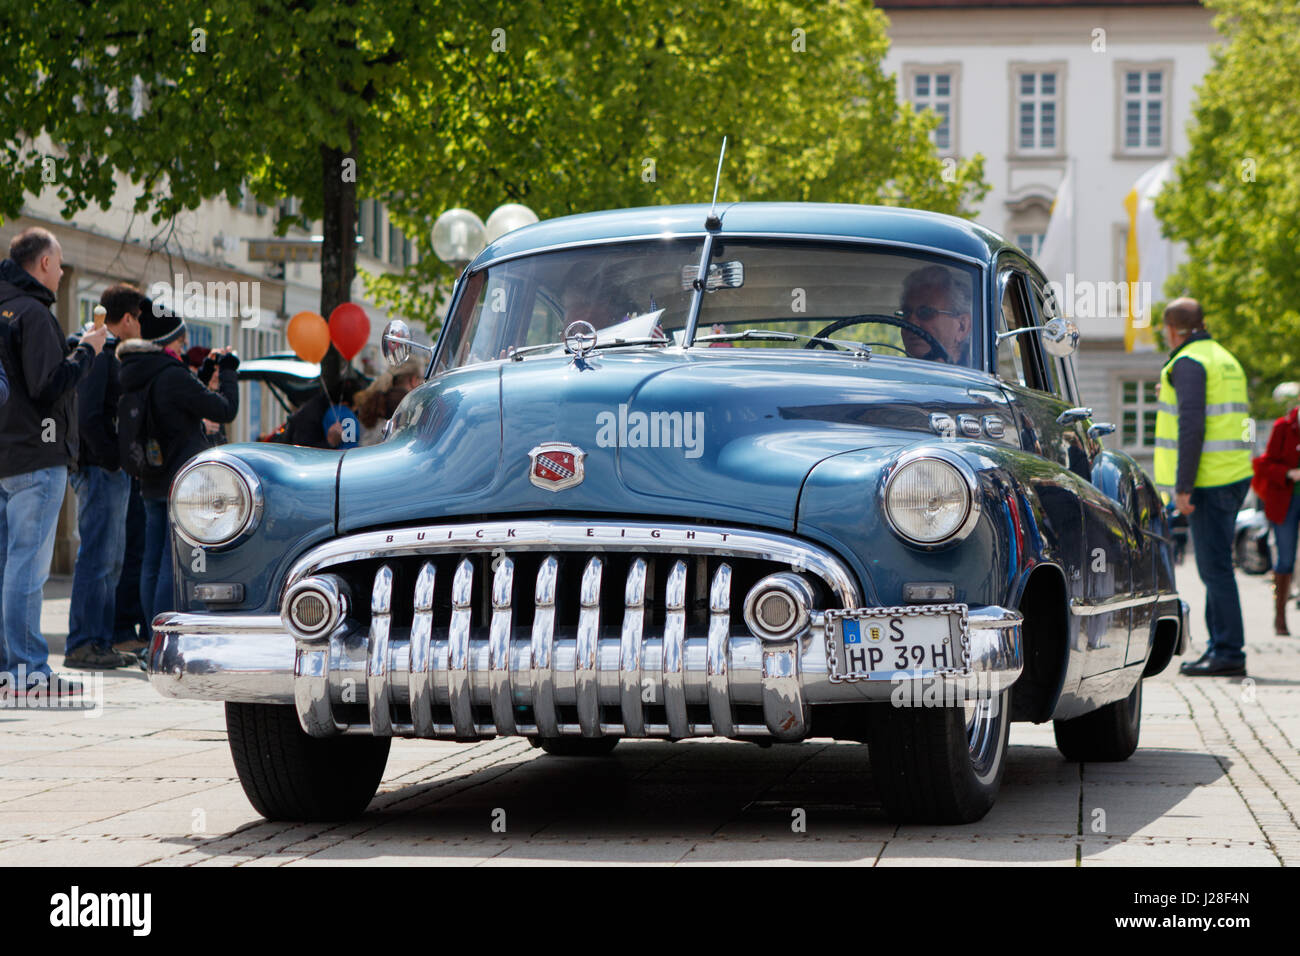 LUDWIGSBURG, GERMANY - APRIL 23, 2017: Buick Special oldtimer car at the eMotionen event on April 23, 2017 in Ludwigsburg, - Stock Image